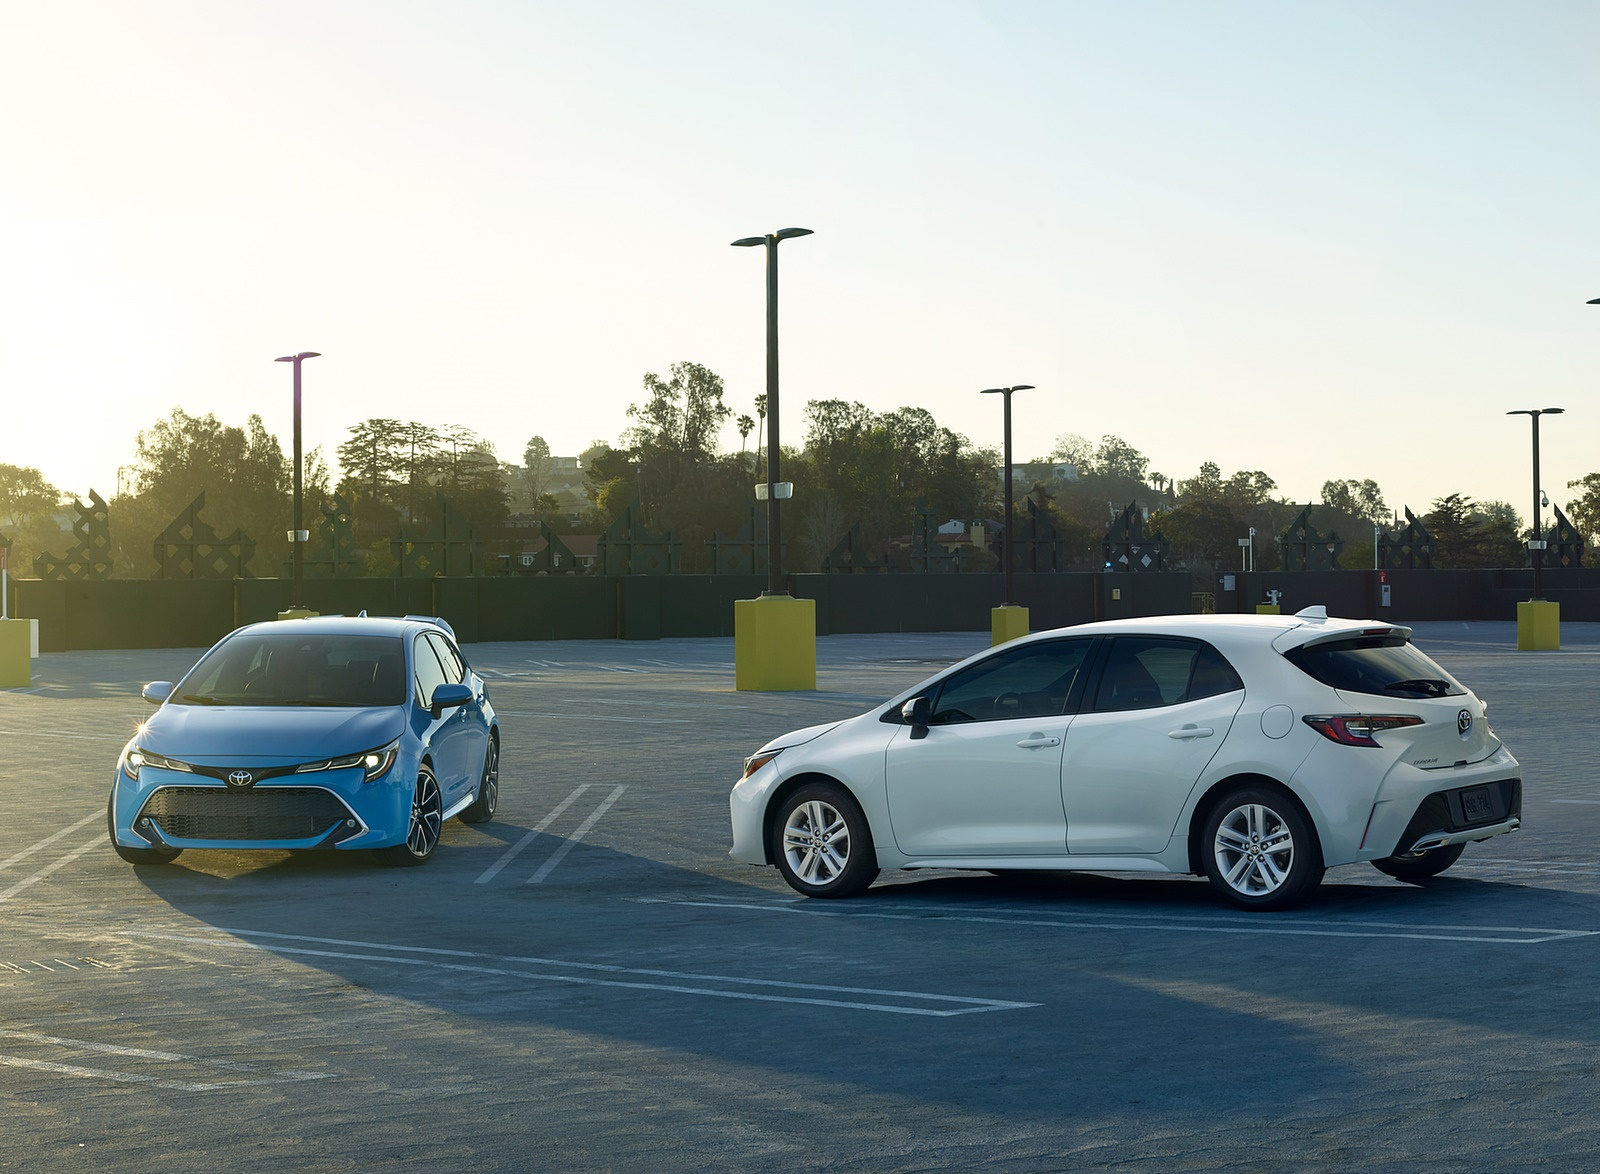 2019 Toyota Corolla Hatchback Side Wallpapers #2 of 75